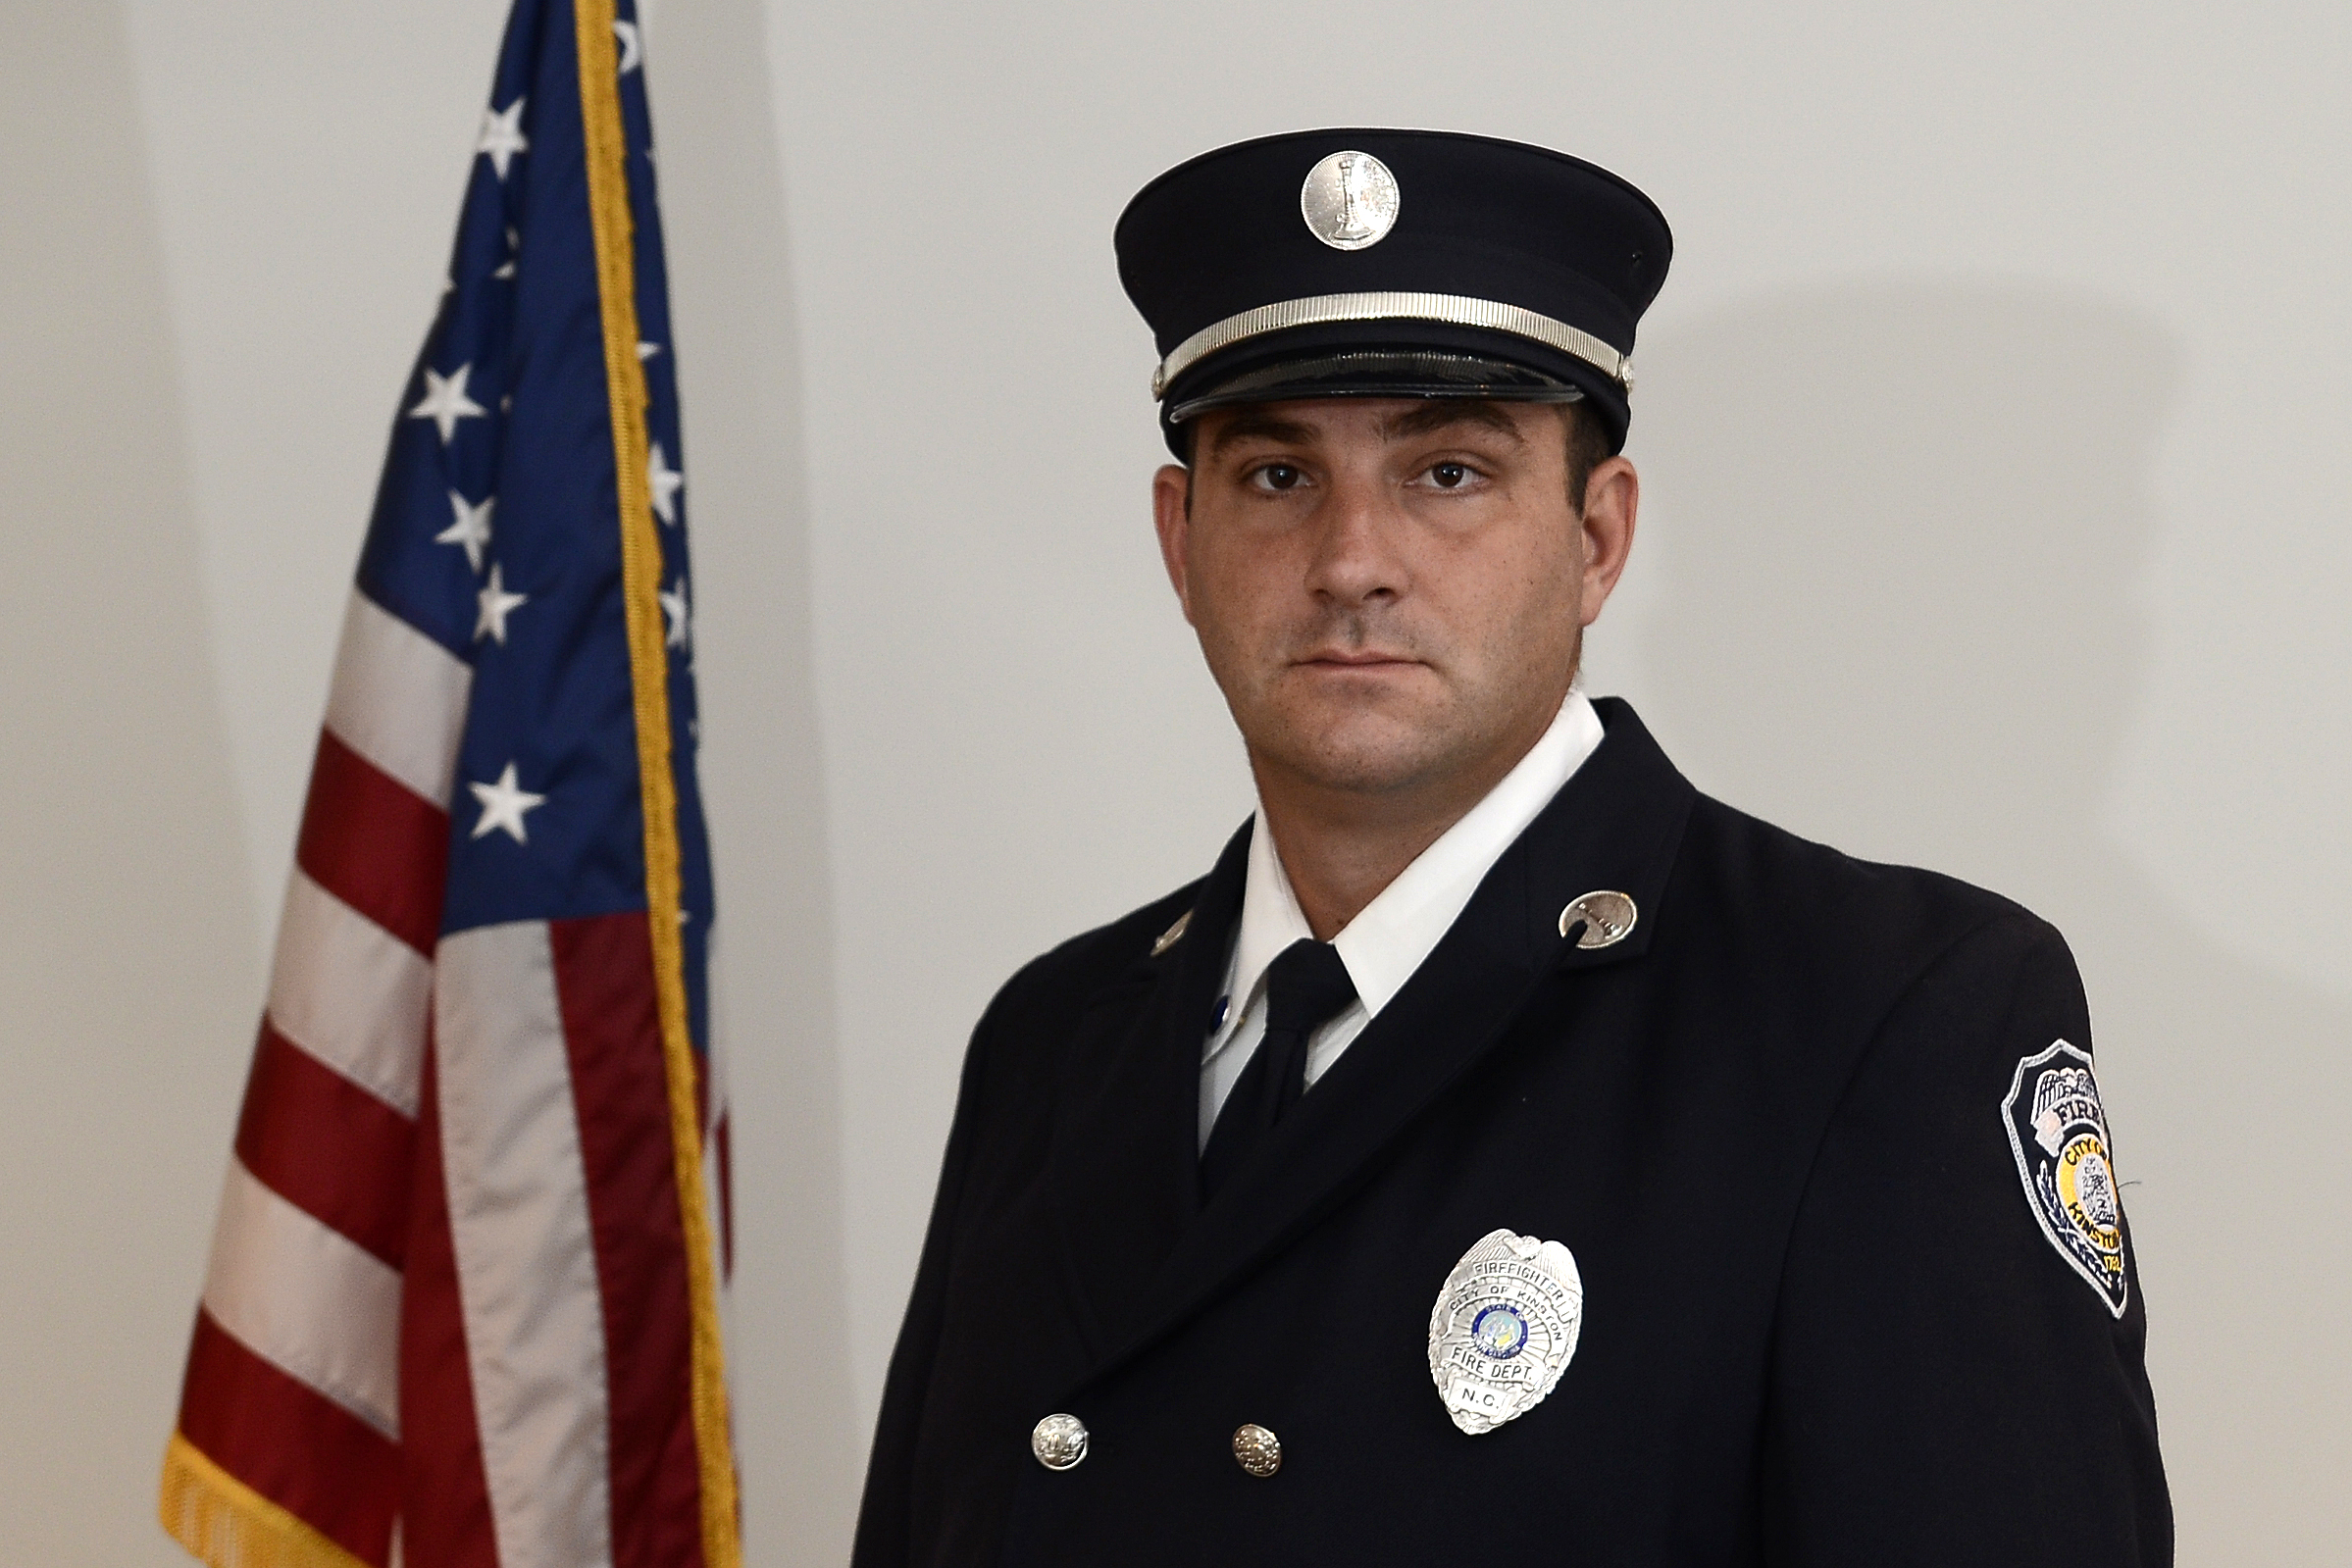 A Shift Captain, Engine 22 Chad Jackson